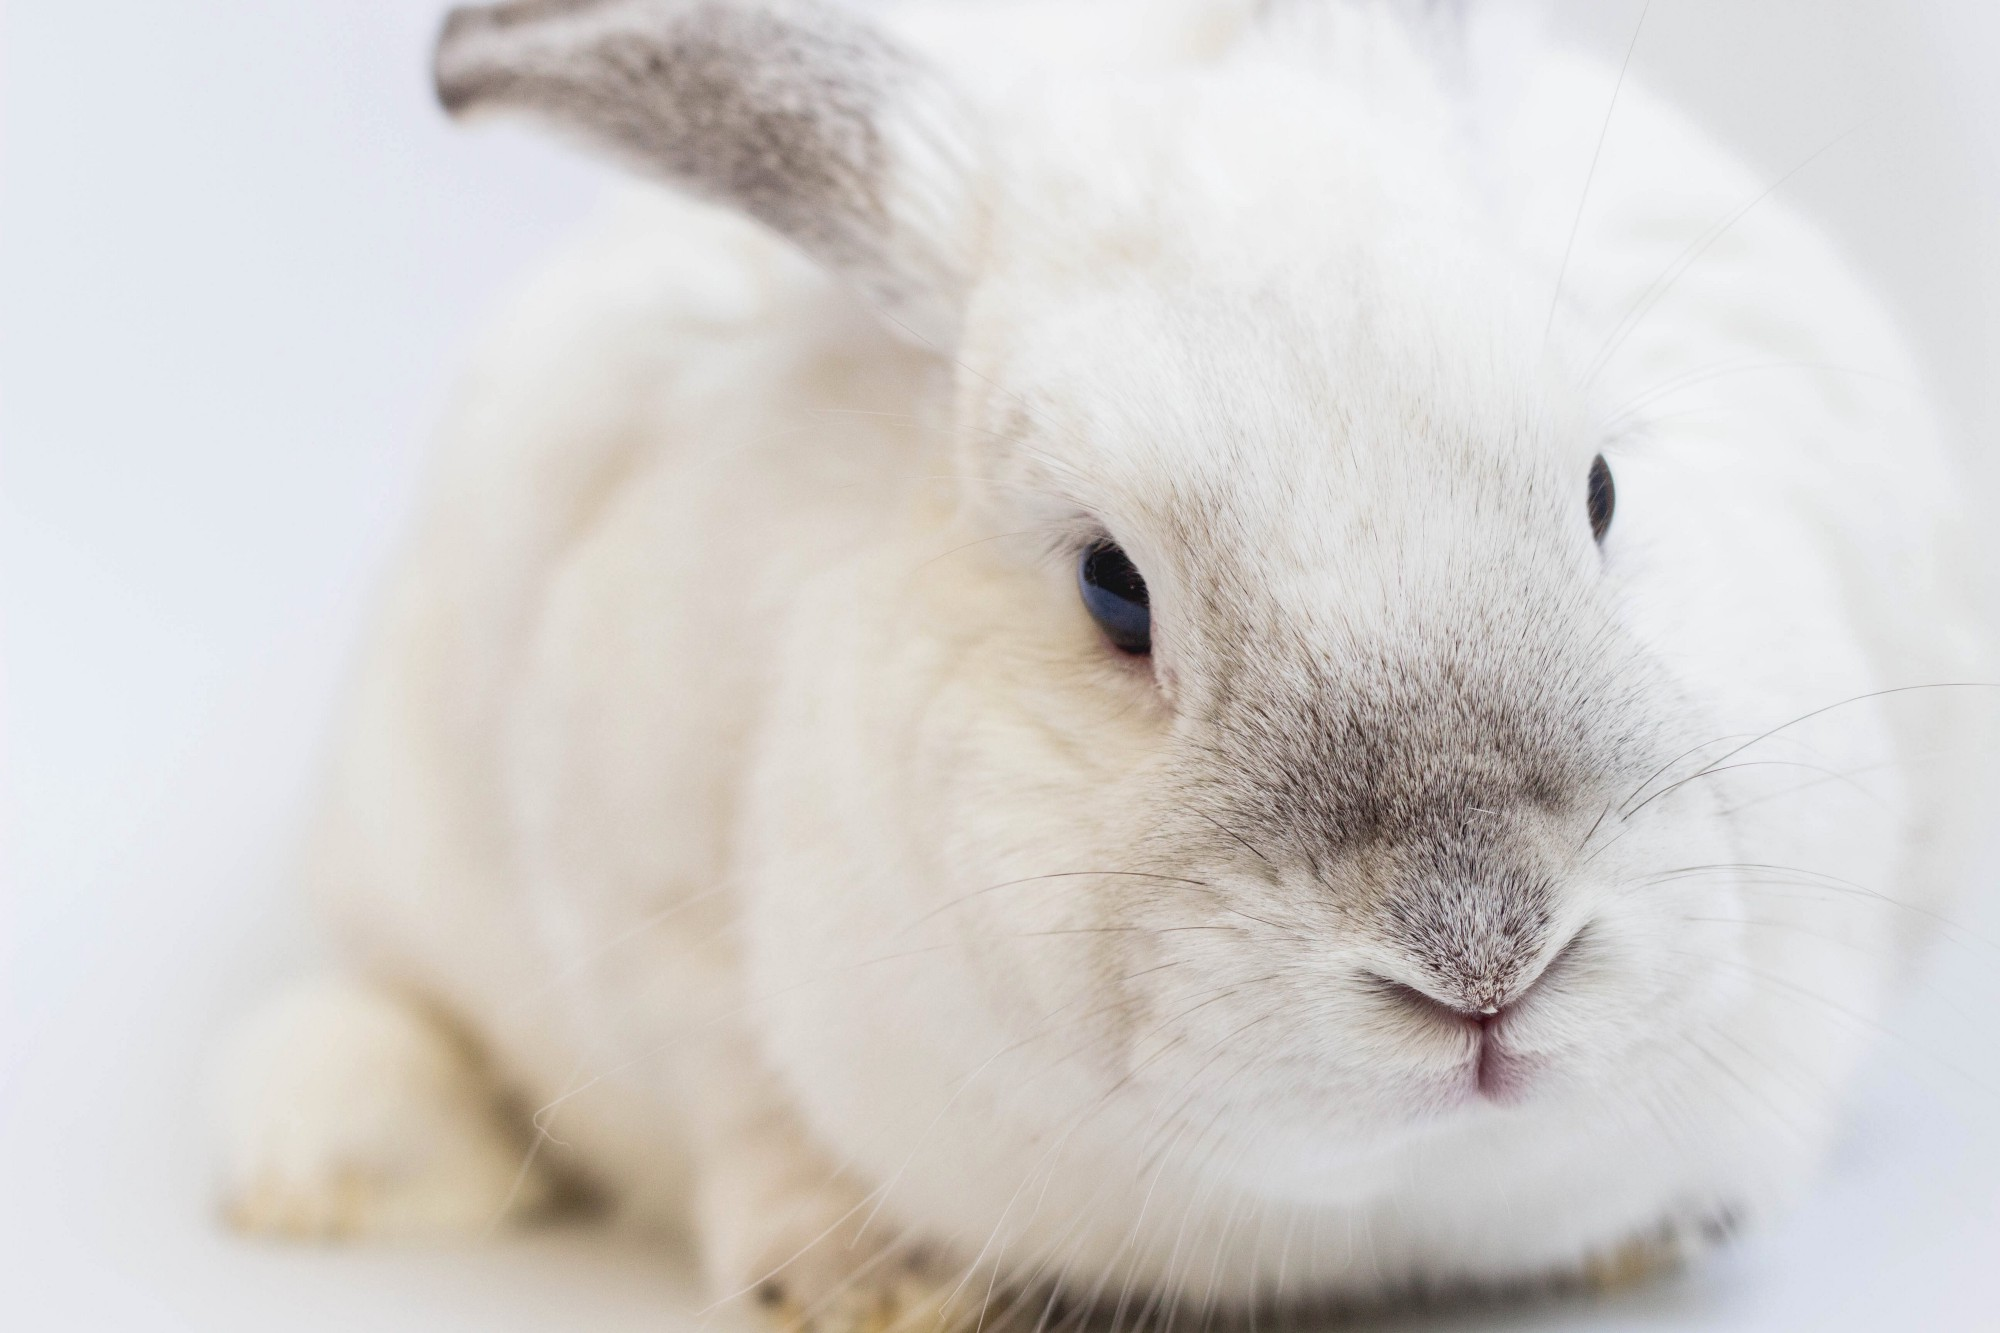 A fluffy white bunny's face fills the screen